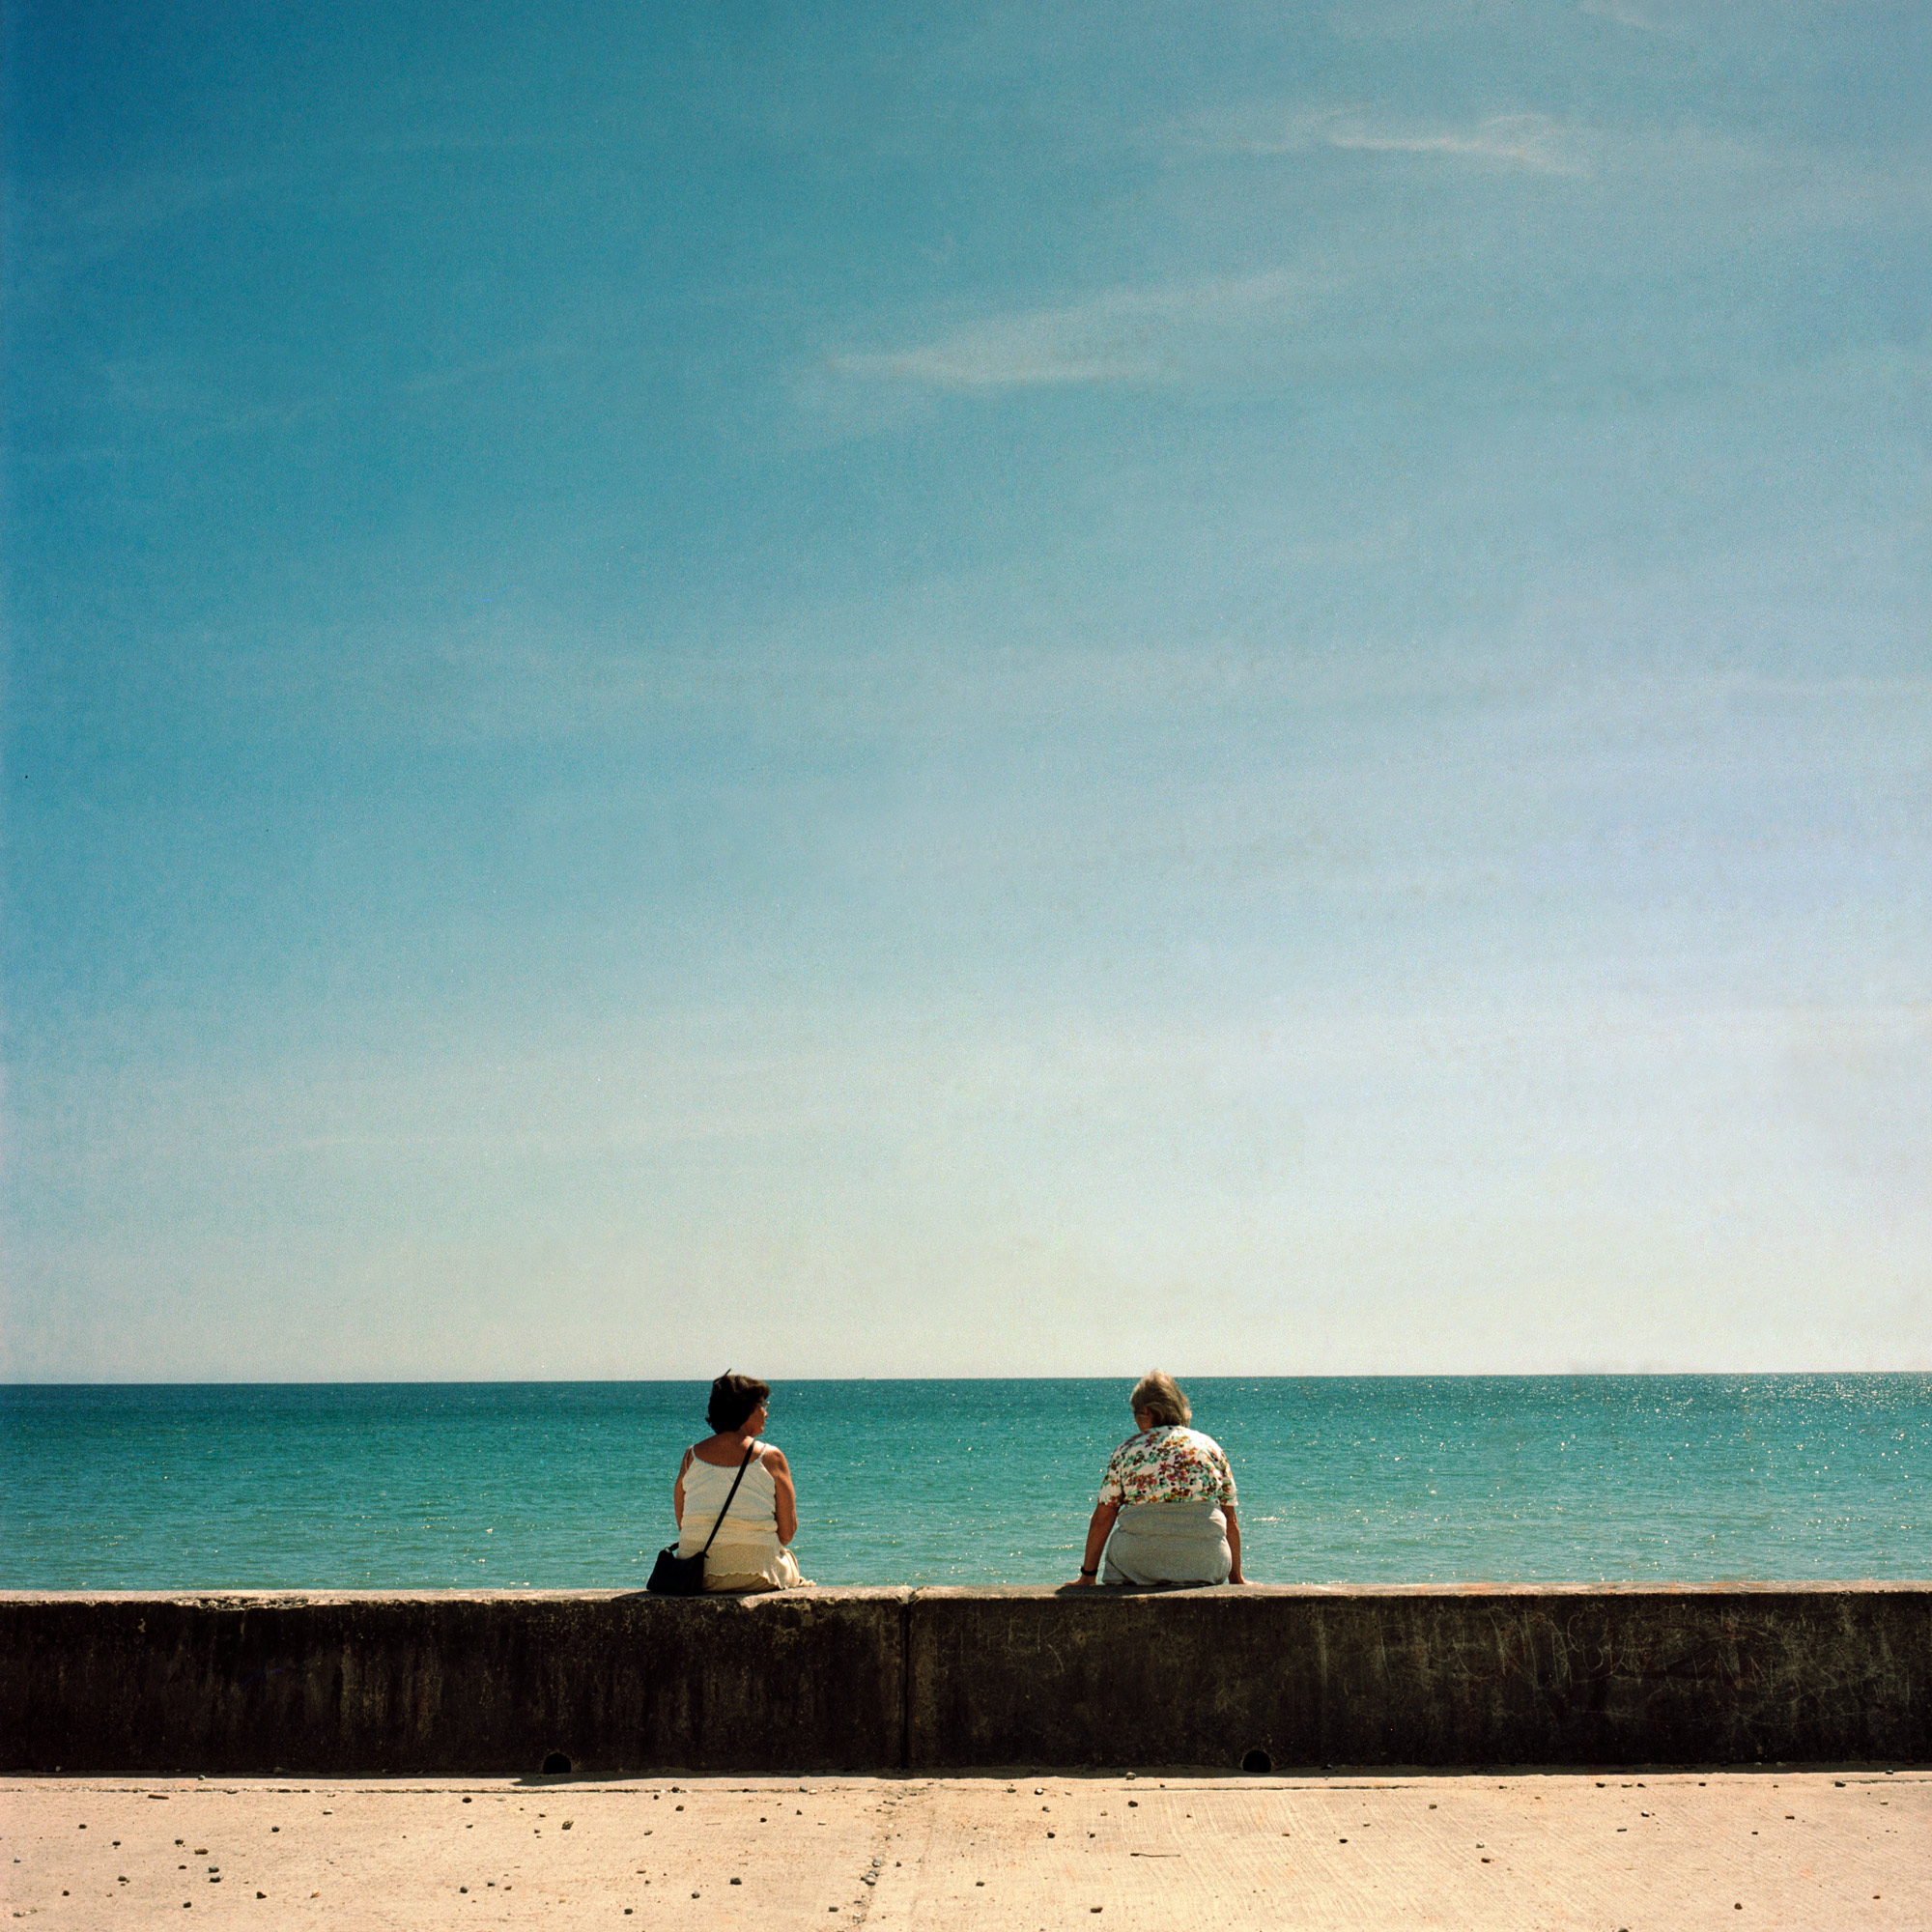 Two At Sea, Peacehaven Beach, Observations Series, Photography By Ioannis Koussertari 2020